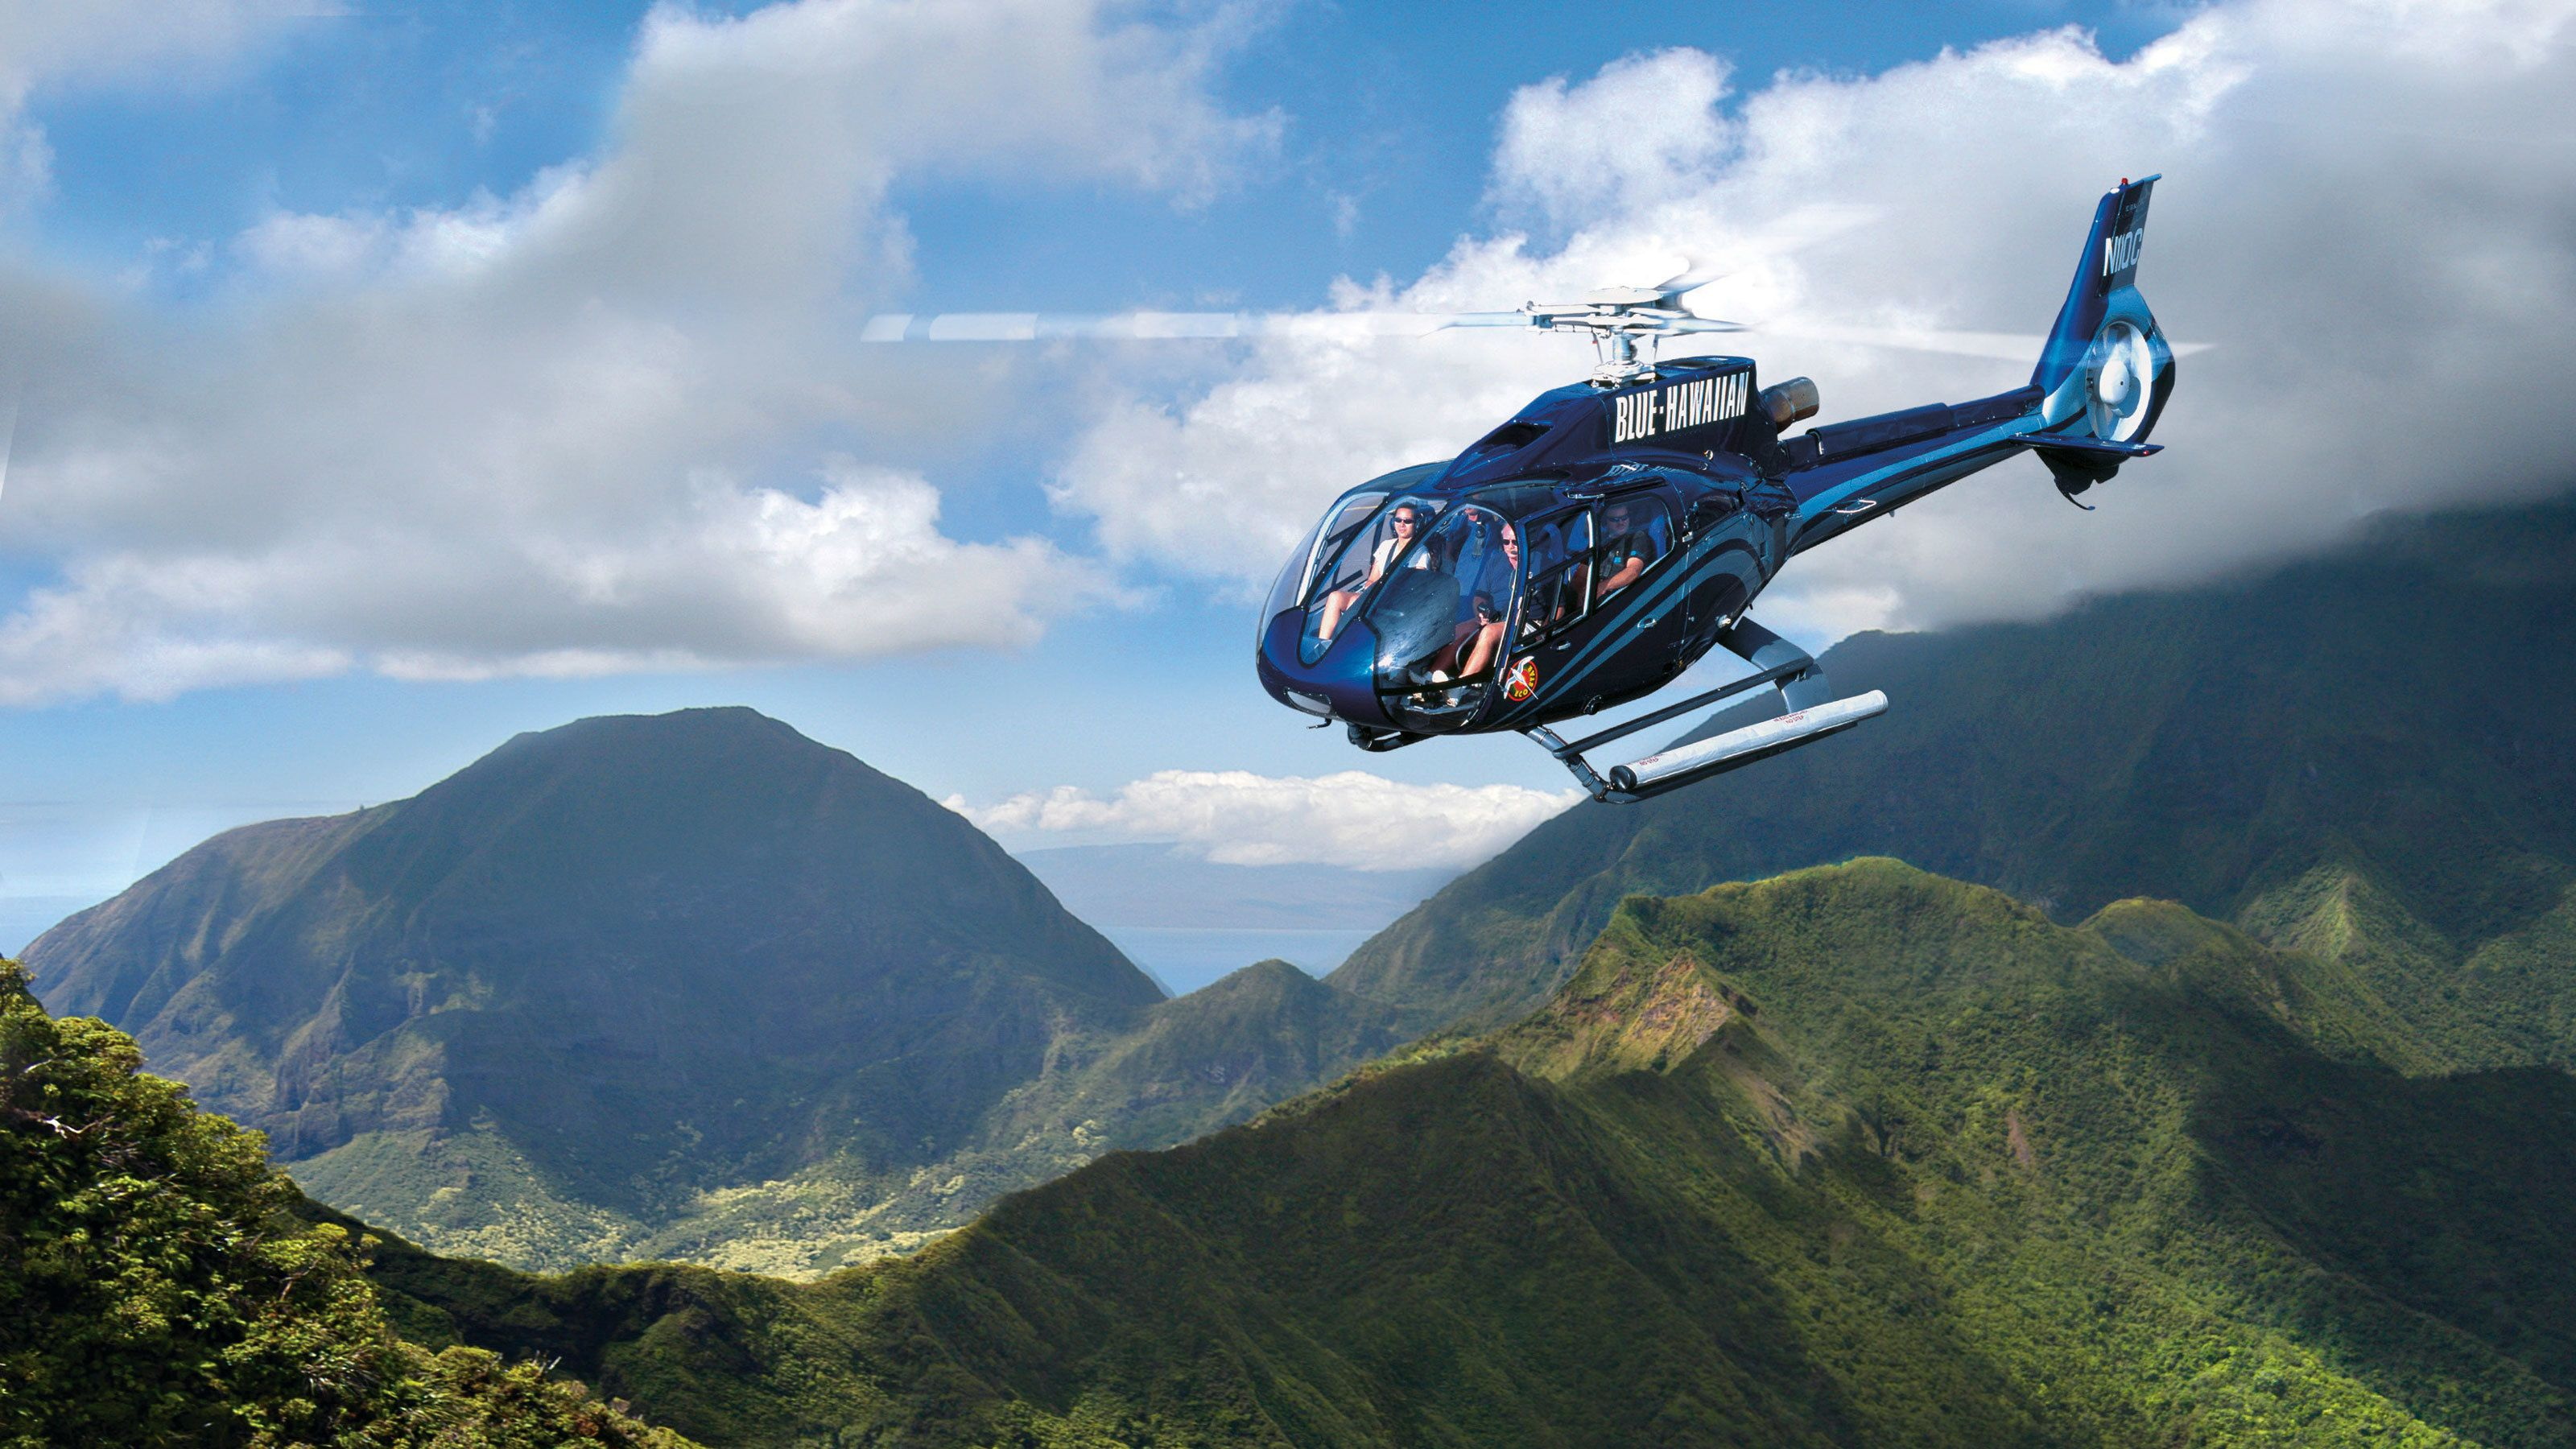 Fly in a Blue Hawaiian helicopter to experience spectacular views of Maui Mountains